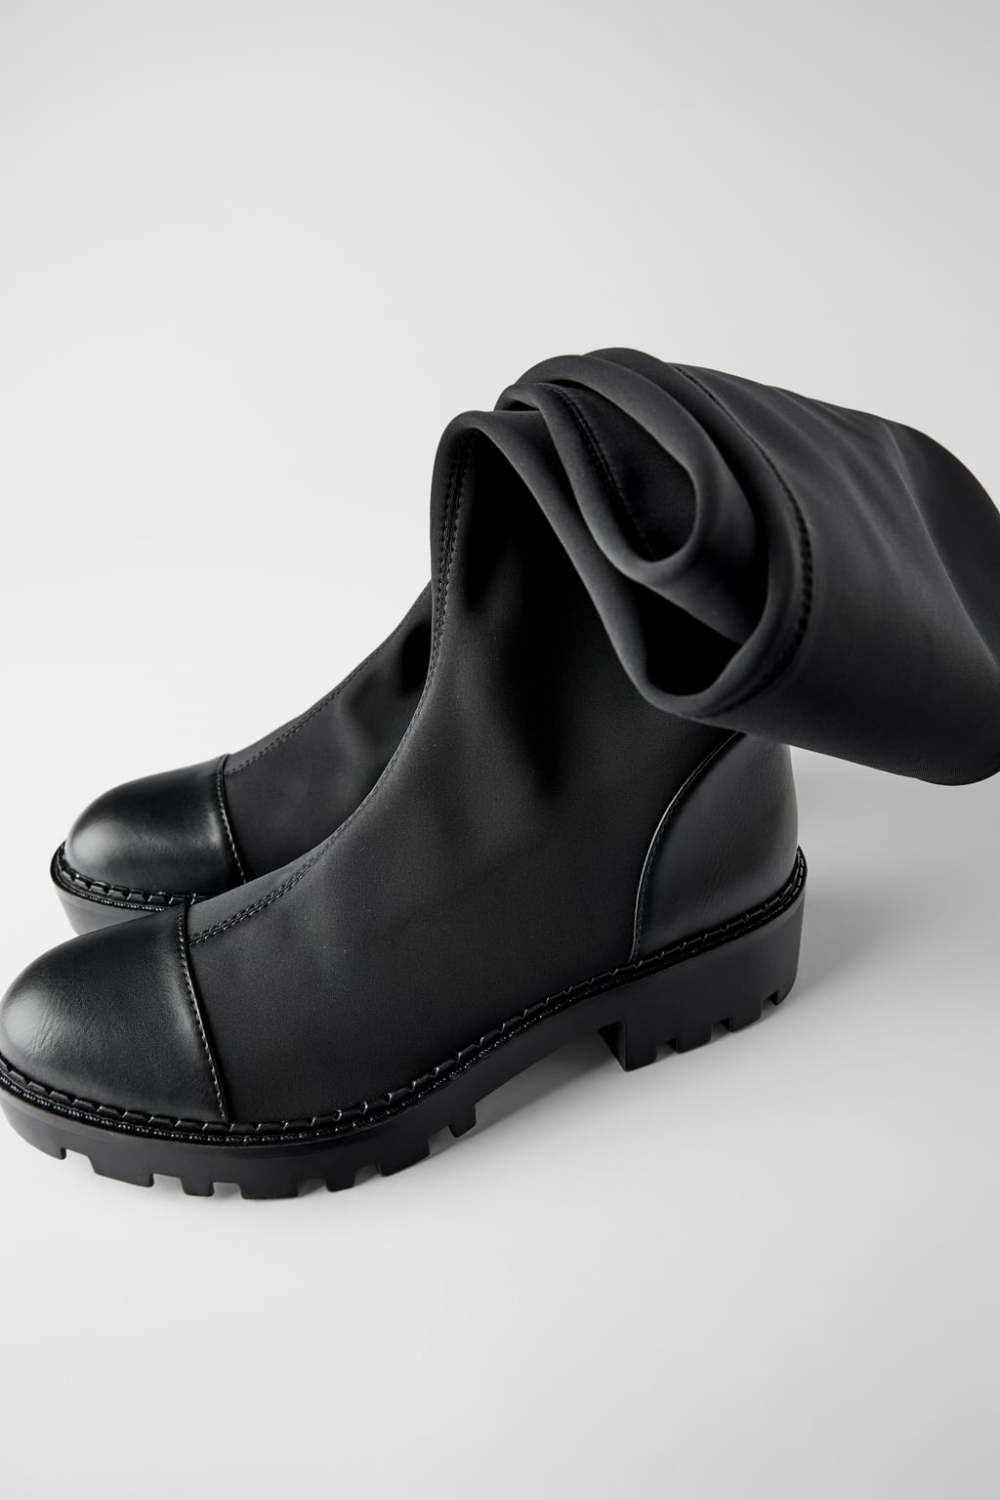 Track Sole Tall Boots Shoes Trf Zara Slovenia Boots Lug Sole Boots Black Leather Ankle Boots [ 1500 x 1000 Pixel ]